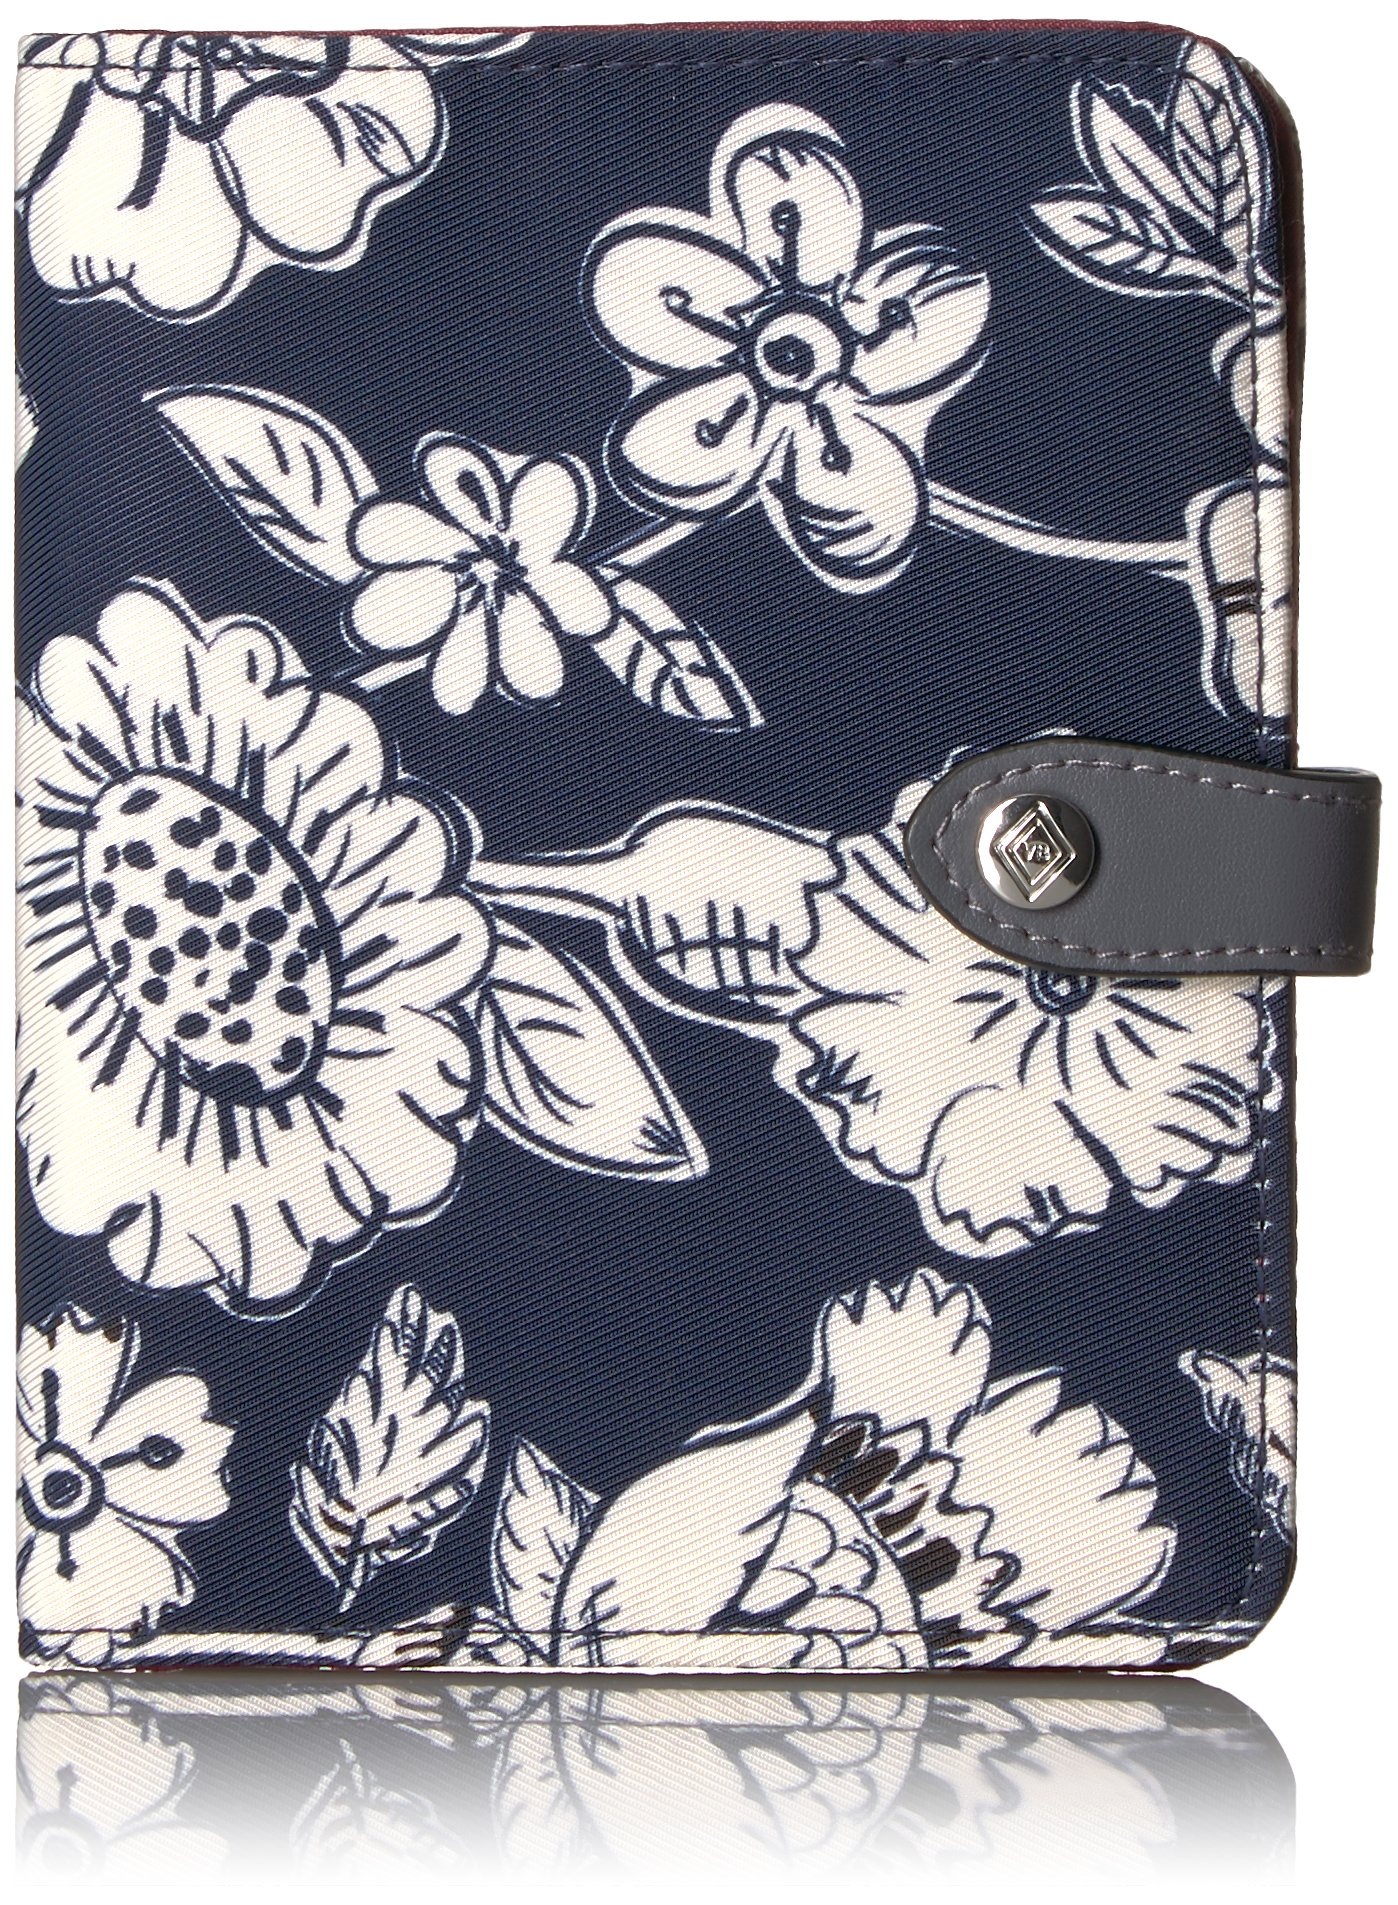 Vera Bradley Women's Midtown RFID Passport Wallet, Midnight Floral, One Size by Vera Bradley